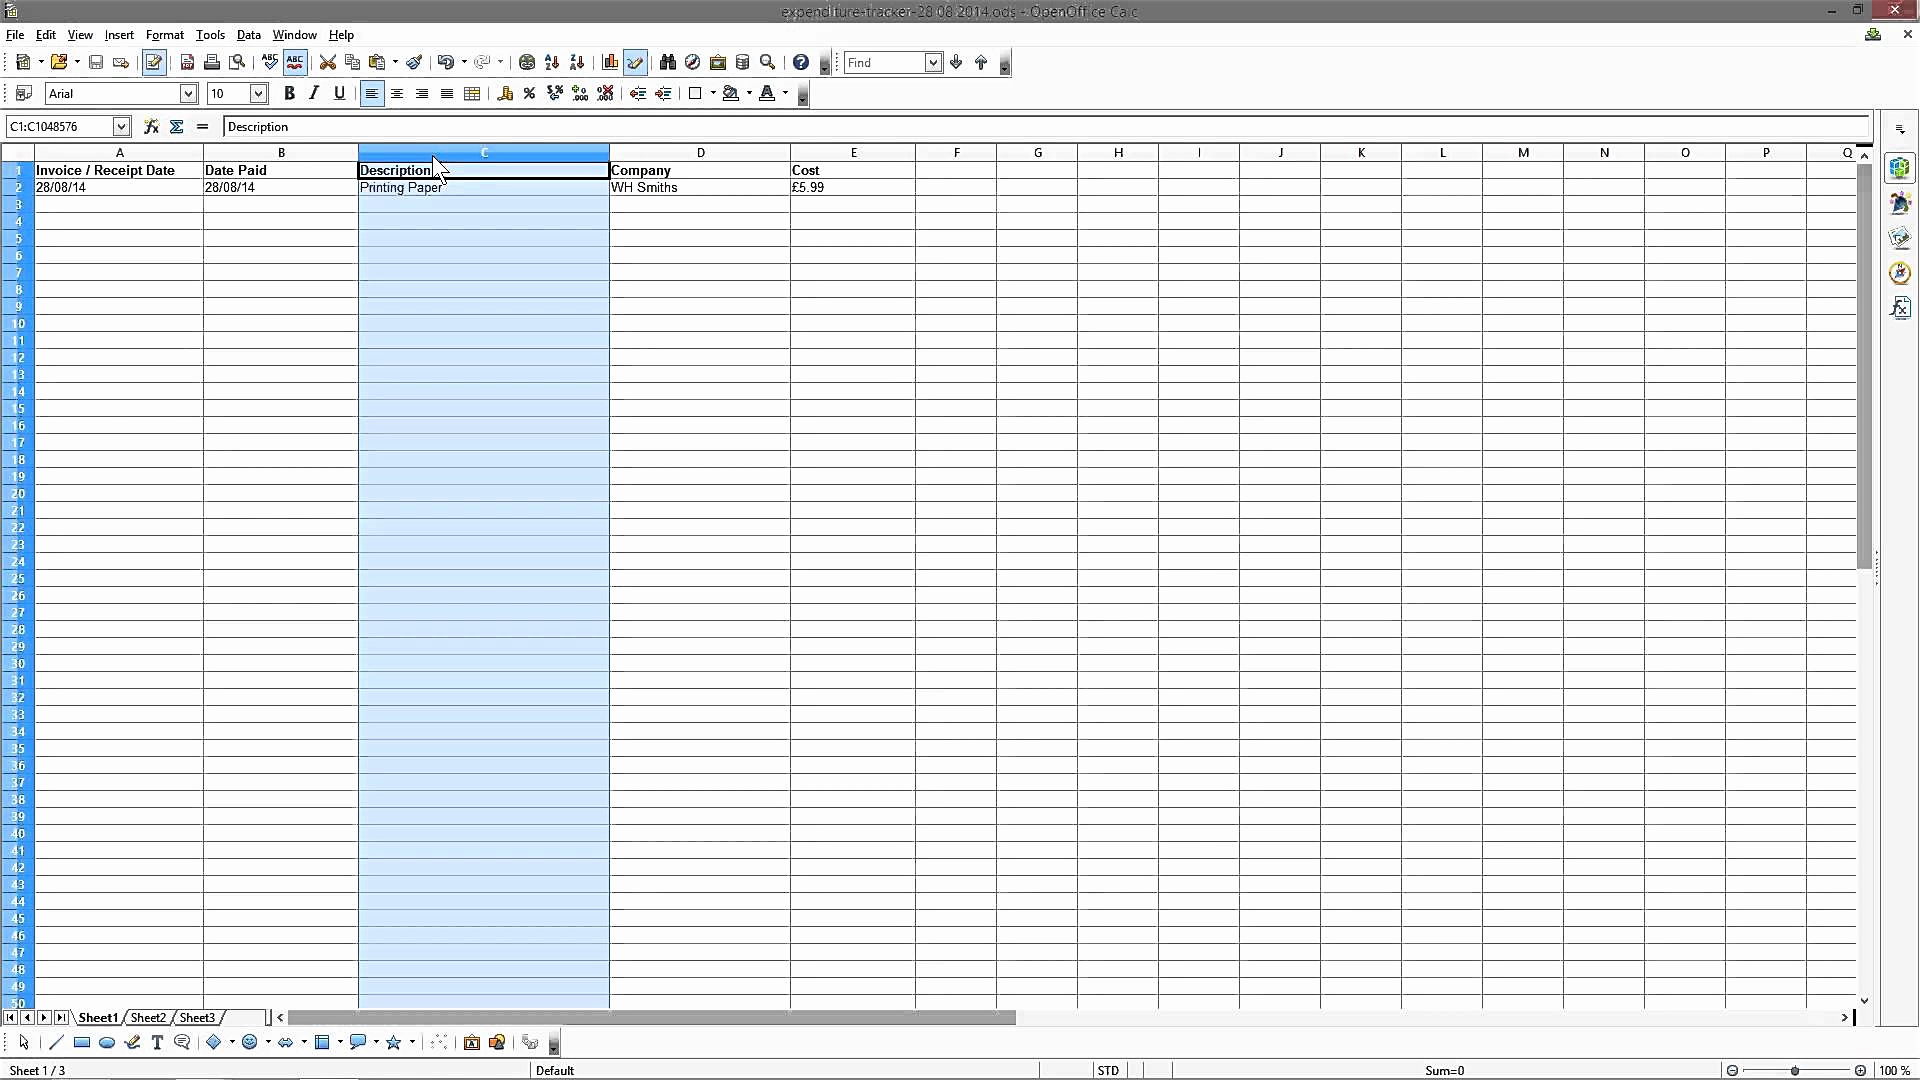 Excel Spreadsheet To Track Business Expenses Regarding Expense Tracker Spreadsheet Or Small Business Expense Sheet Excel